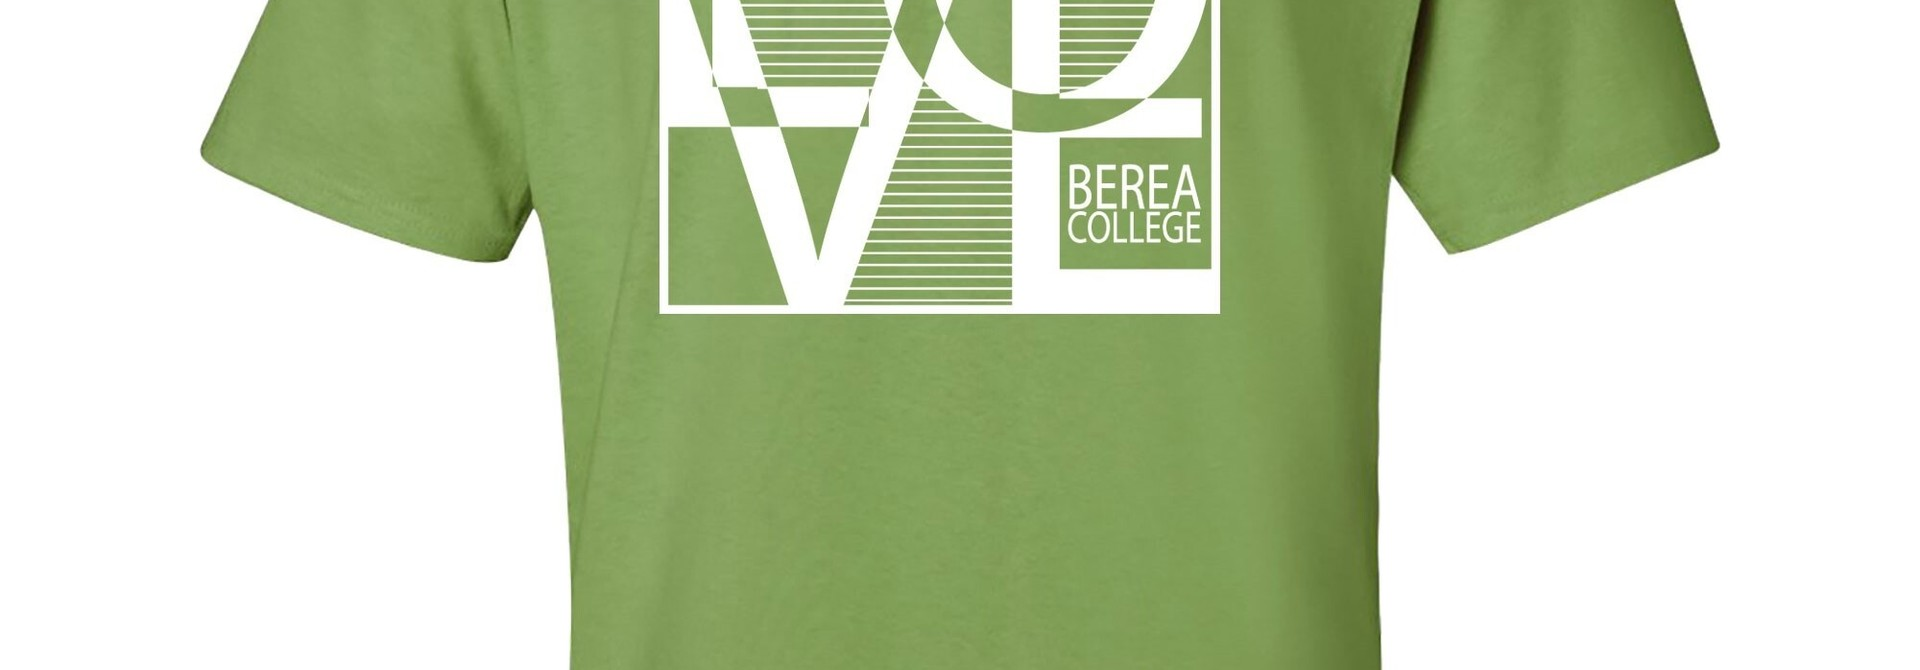 Berea College Love T-Shirt